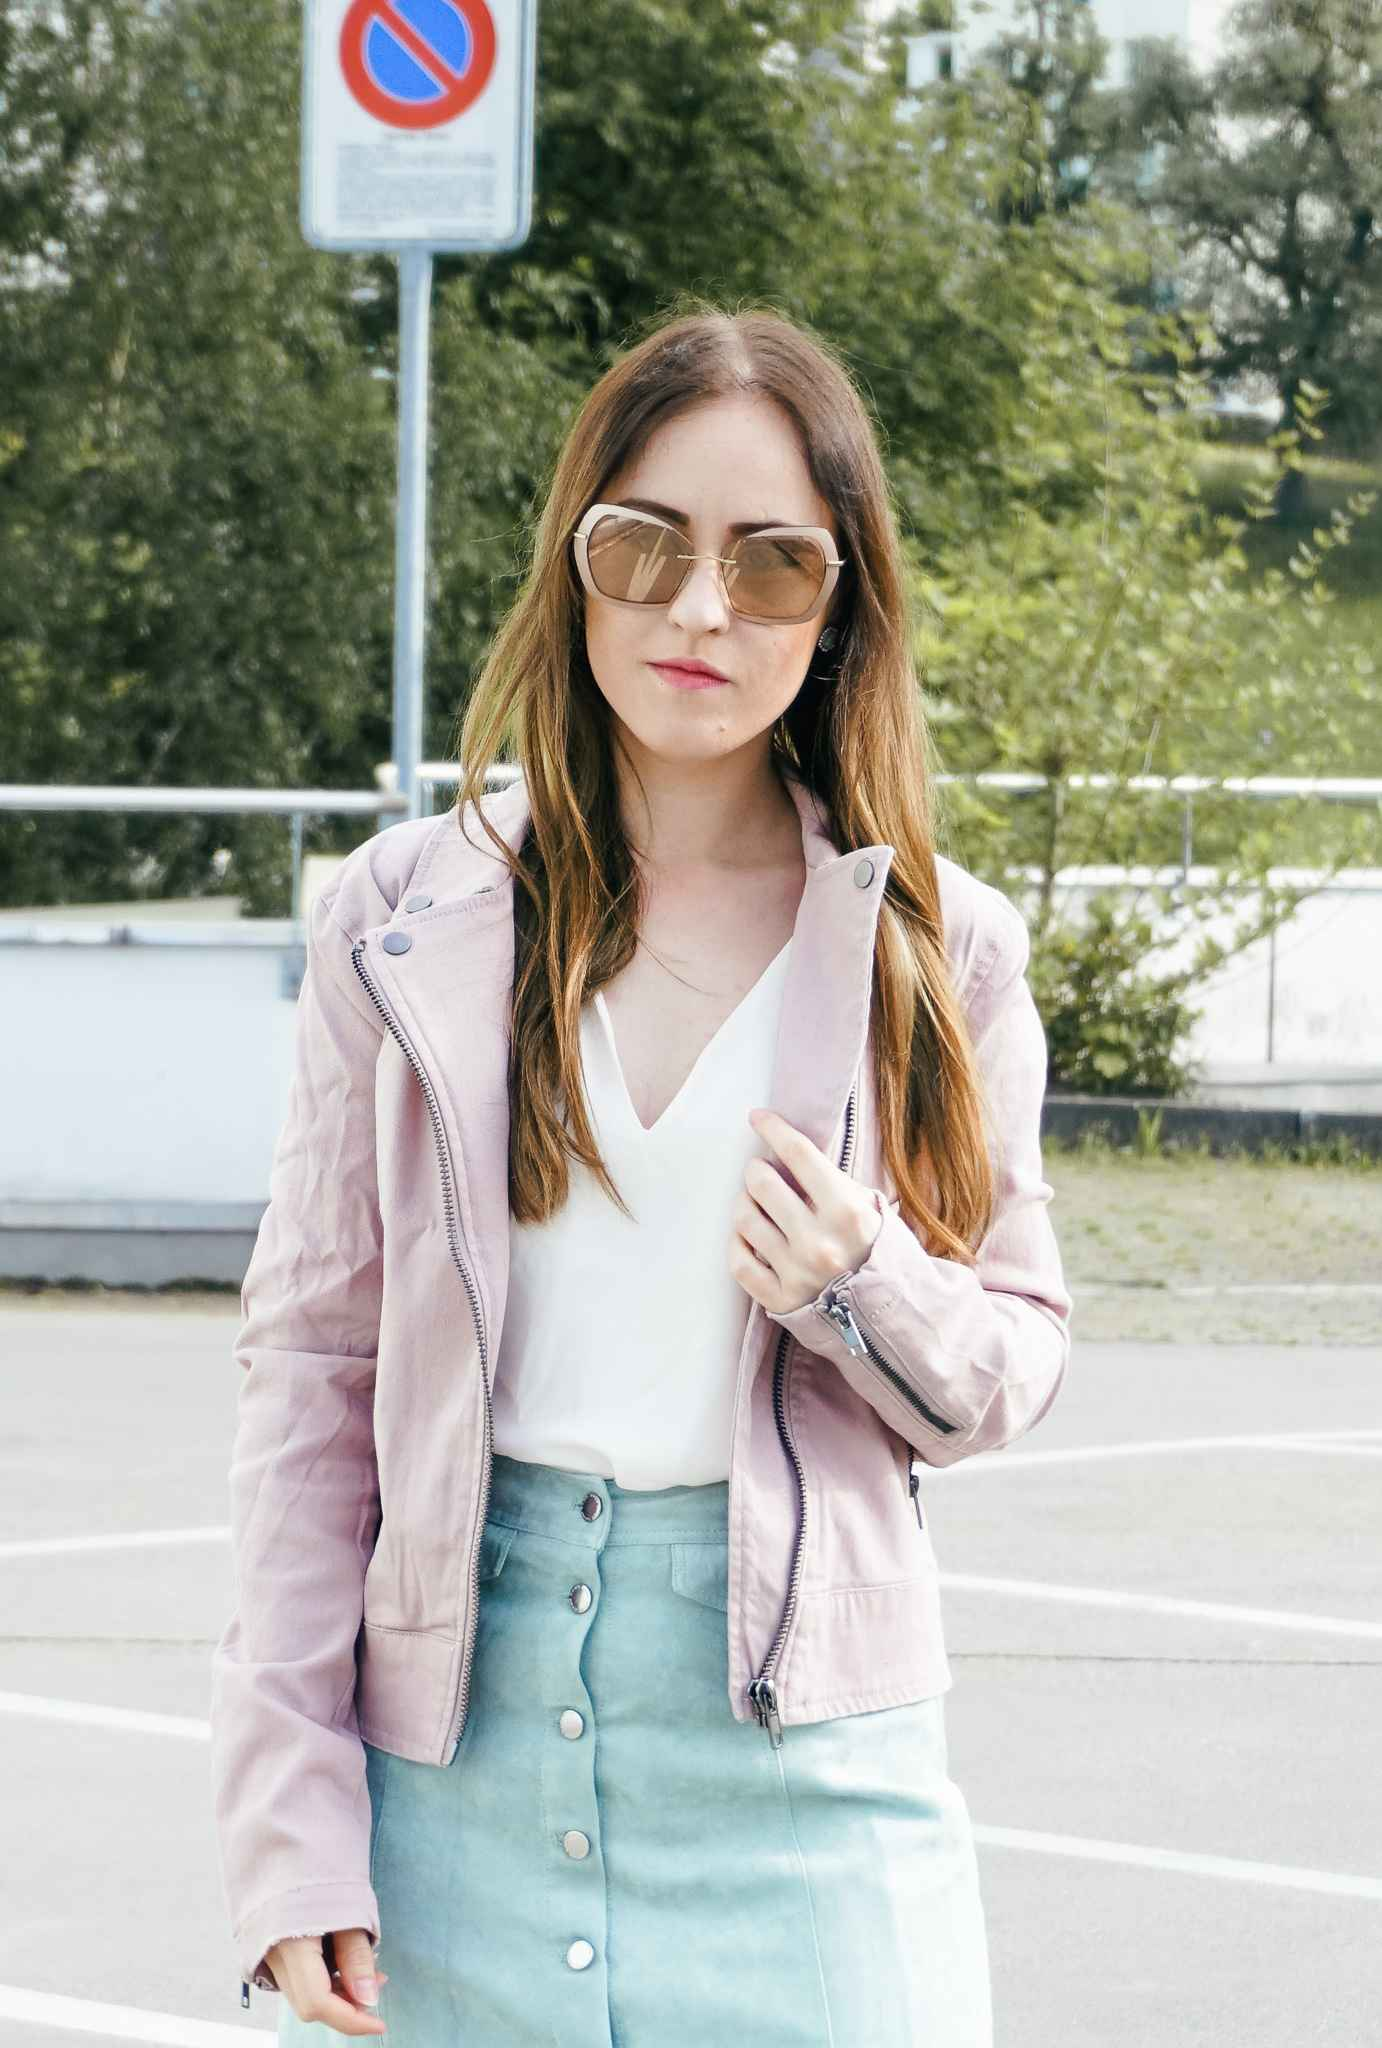 Look Fashion Blogger Sunglasses Silhouette skirt shirt H&M Shoes